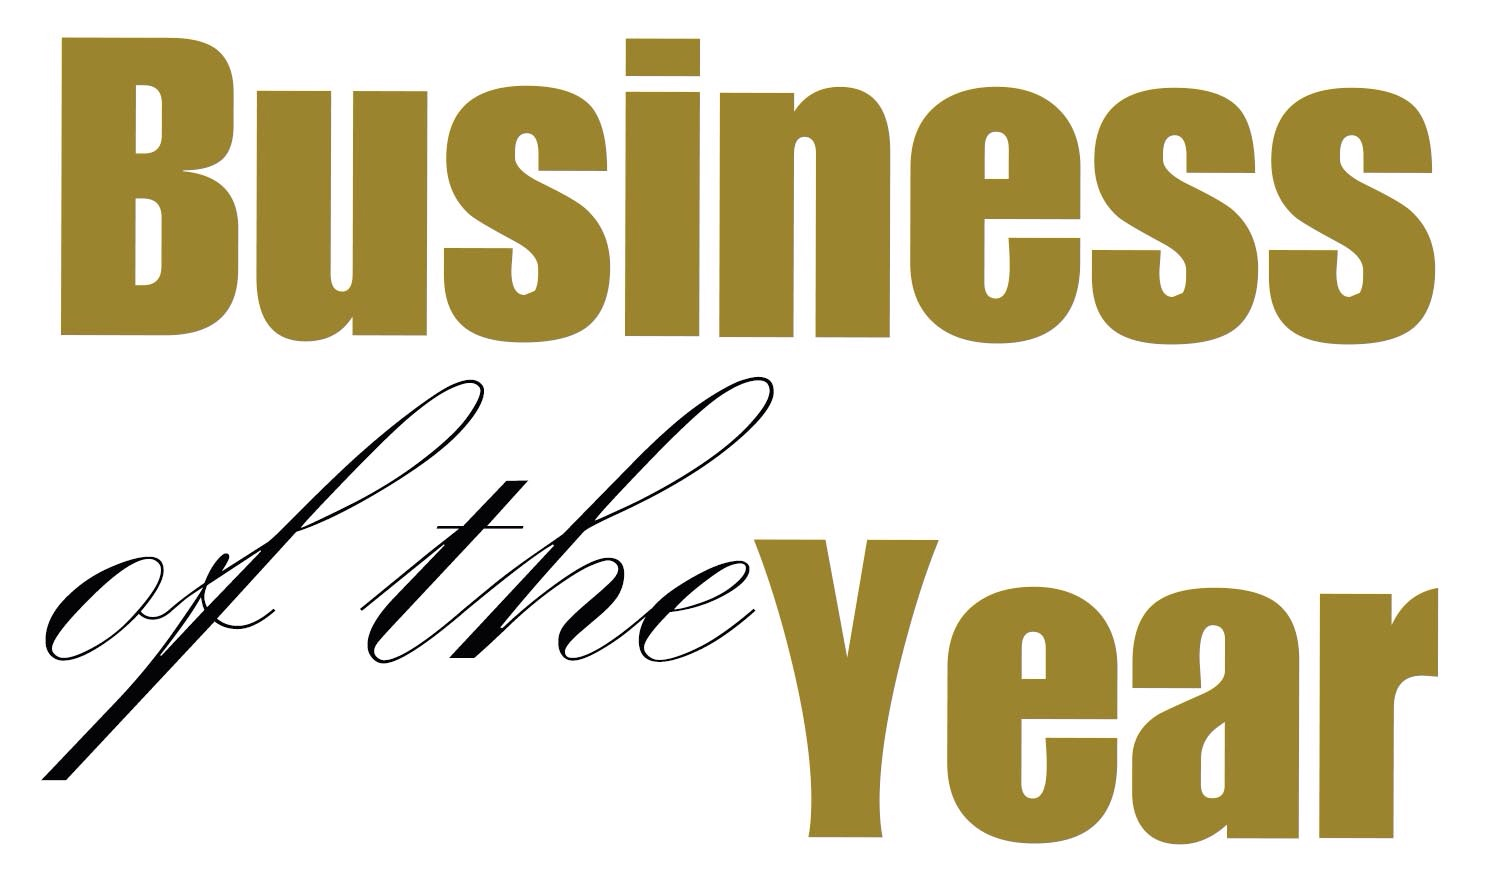 Chair City Oil Business of the Year  sc 1 th 174 & Business Of The Year! | Chair City Oil u0026 Heating